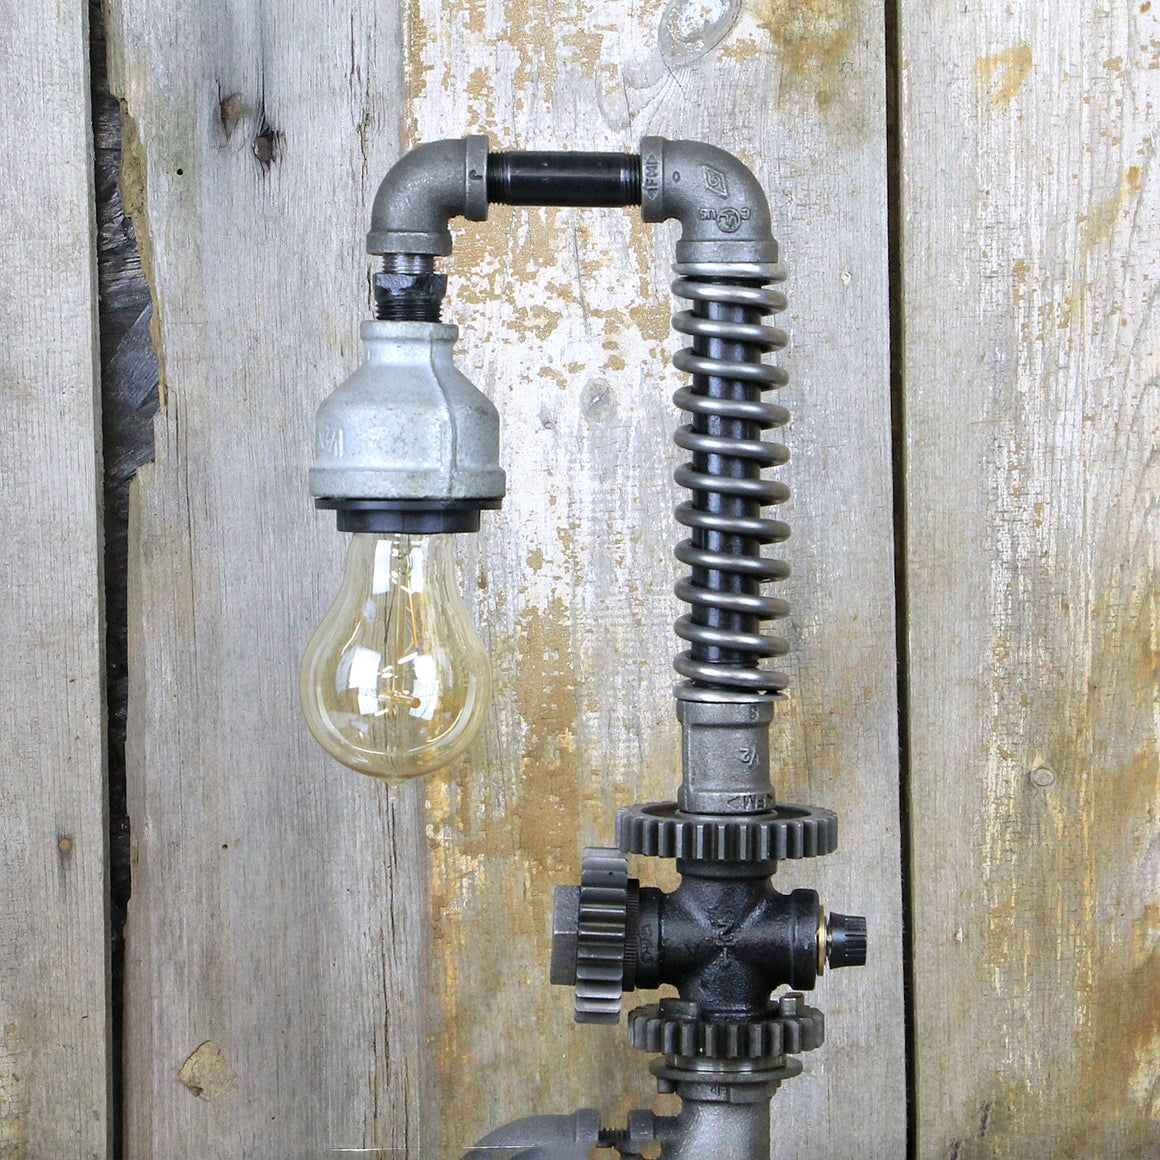 Industrial Table Lamp - Steampunk Desk Lamp #88 - The Lighting Works